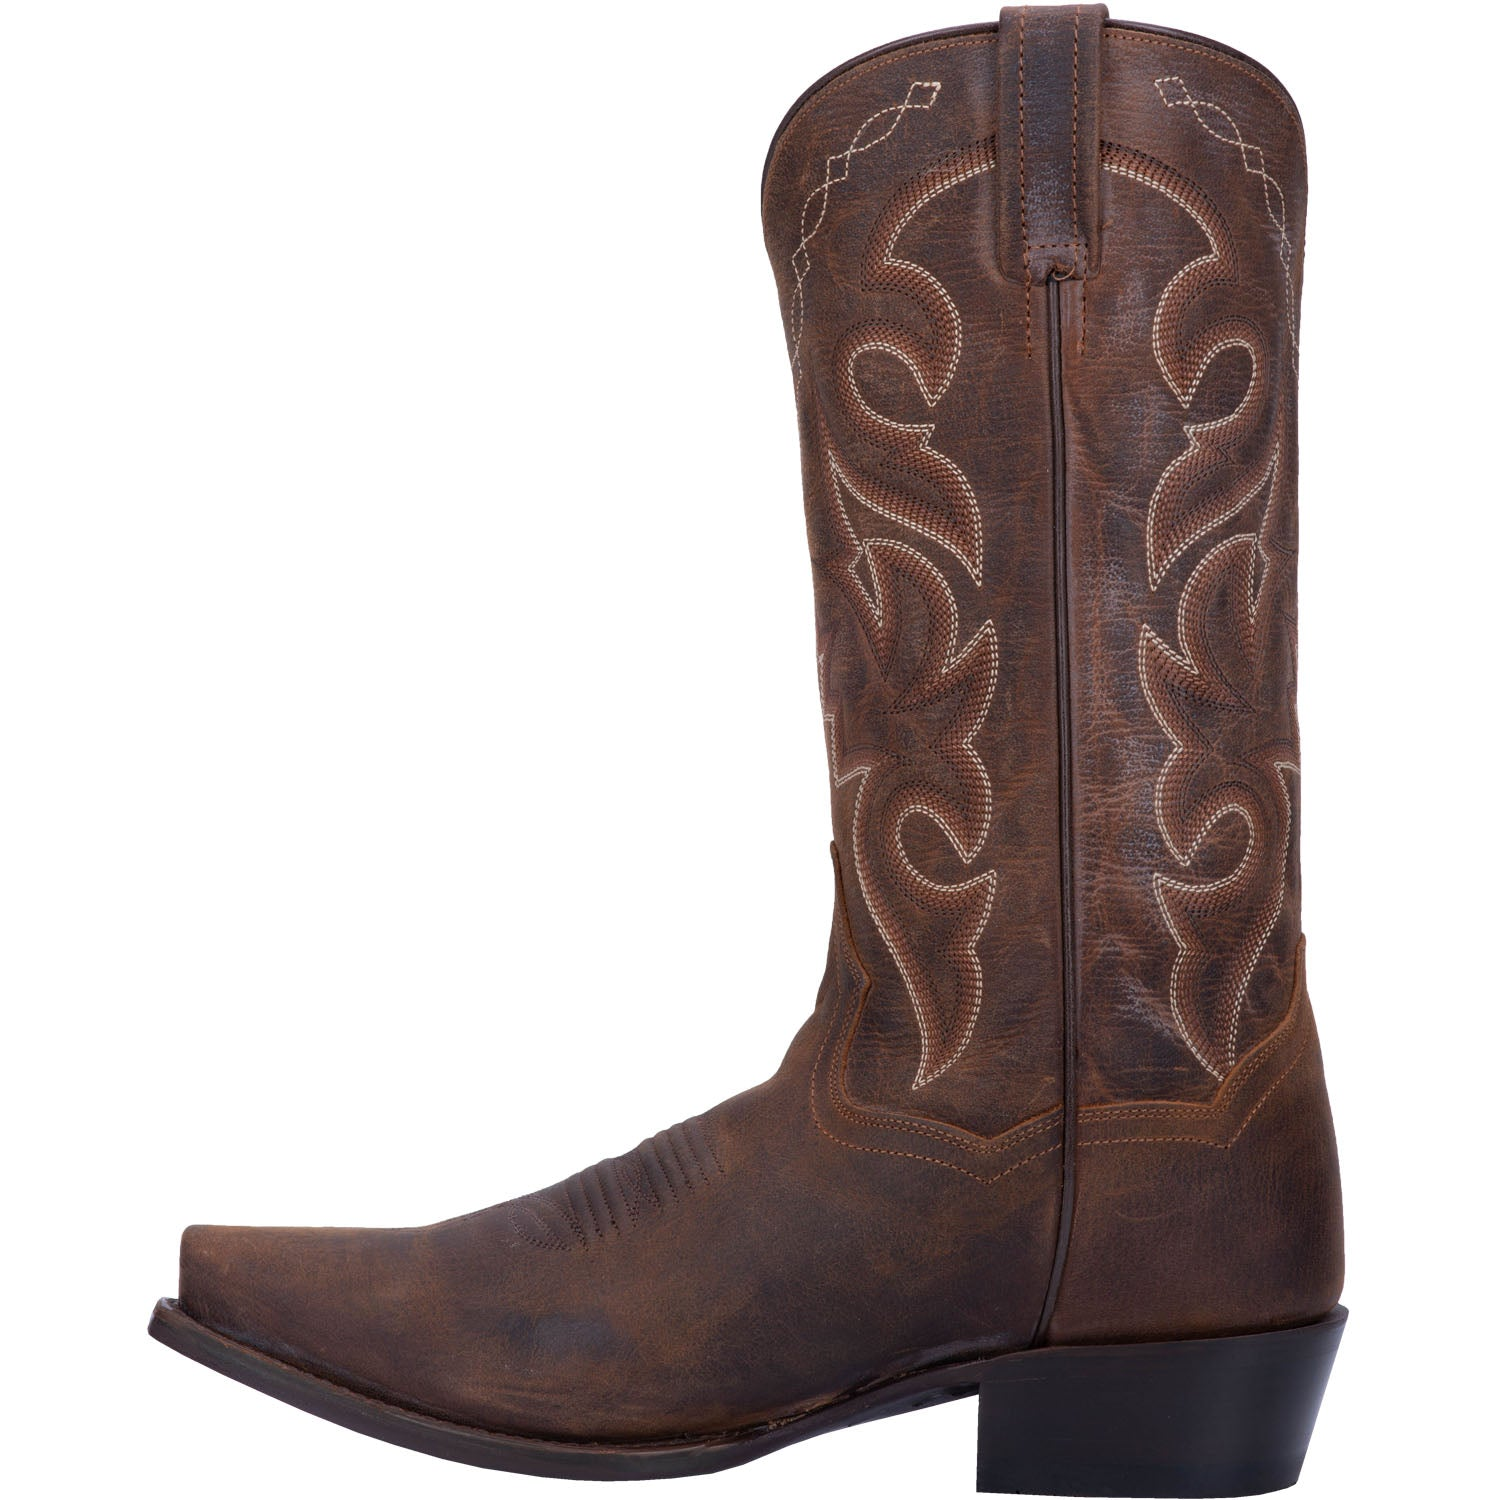 RENEGADE S LEATHER BOOT - Dan Post Boots